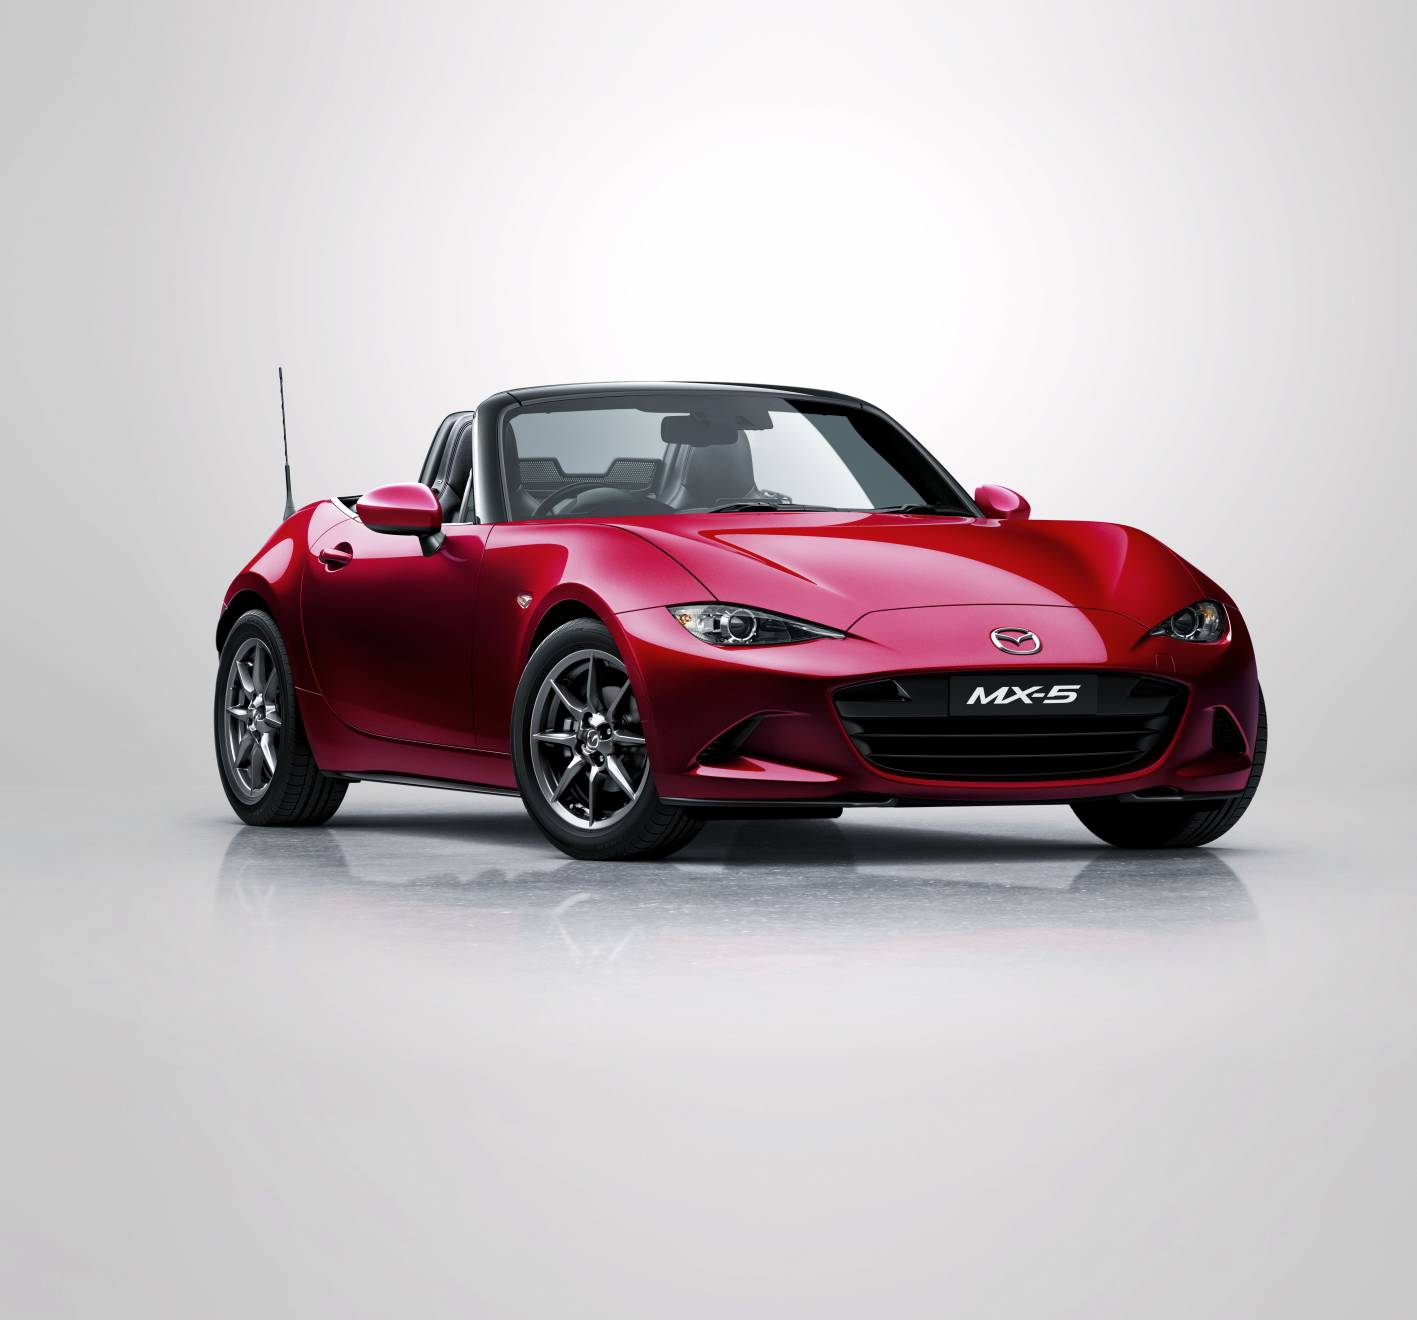 2018 Mazda MX-5 Enhanced For Better Refinement And